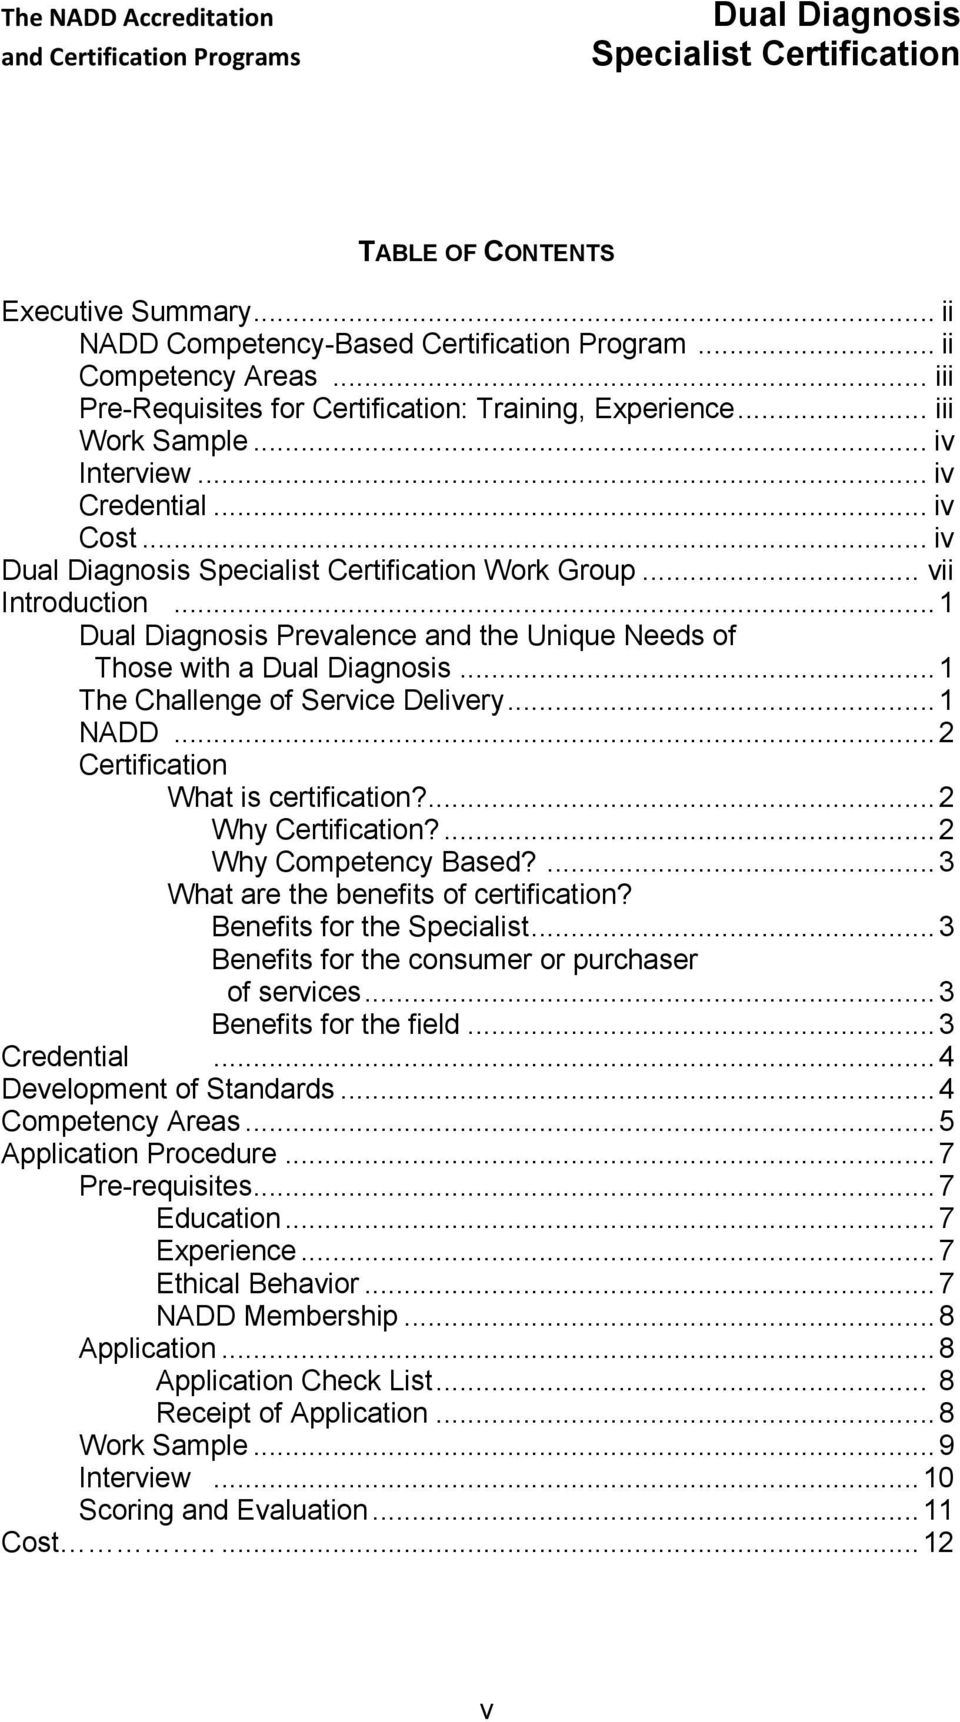 .. 2 Certification What is certification?... 2 Why Certification?... 2 Why Competency Based?... 3 What are the benefits of certification? Benefits for the Specialist.